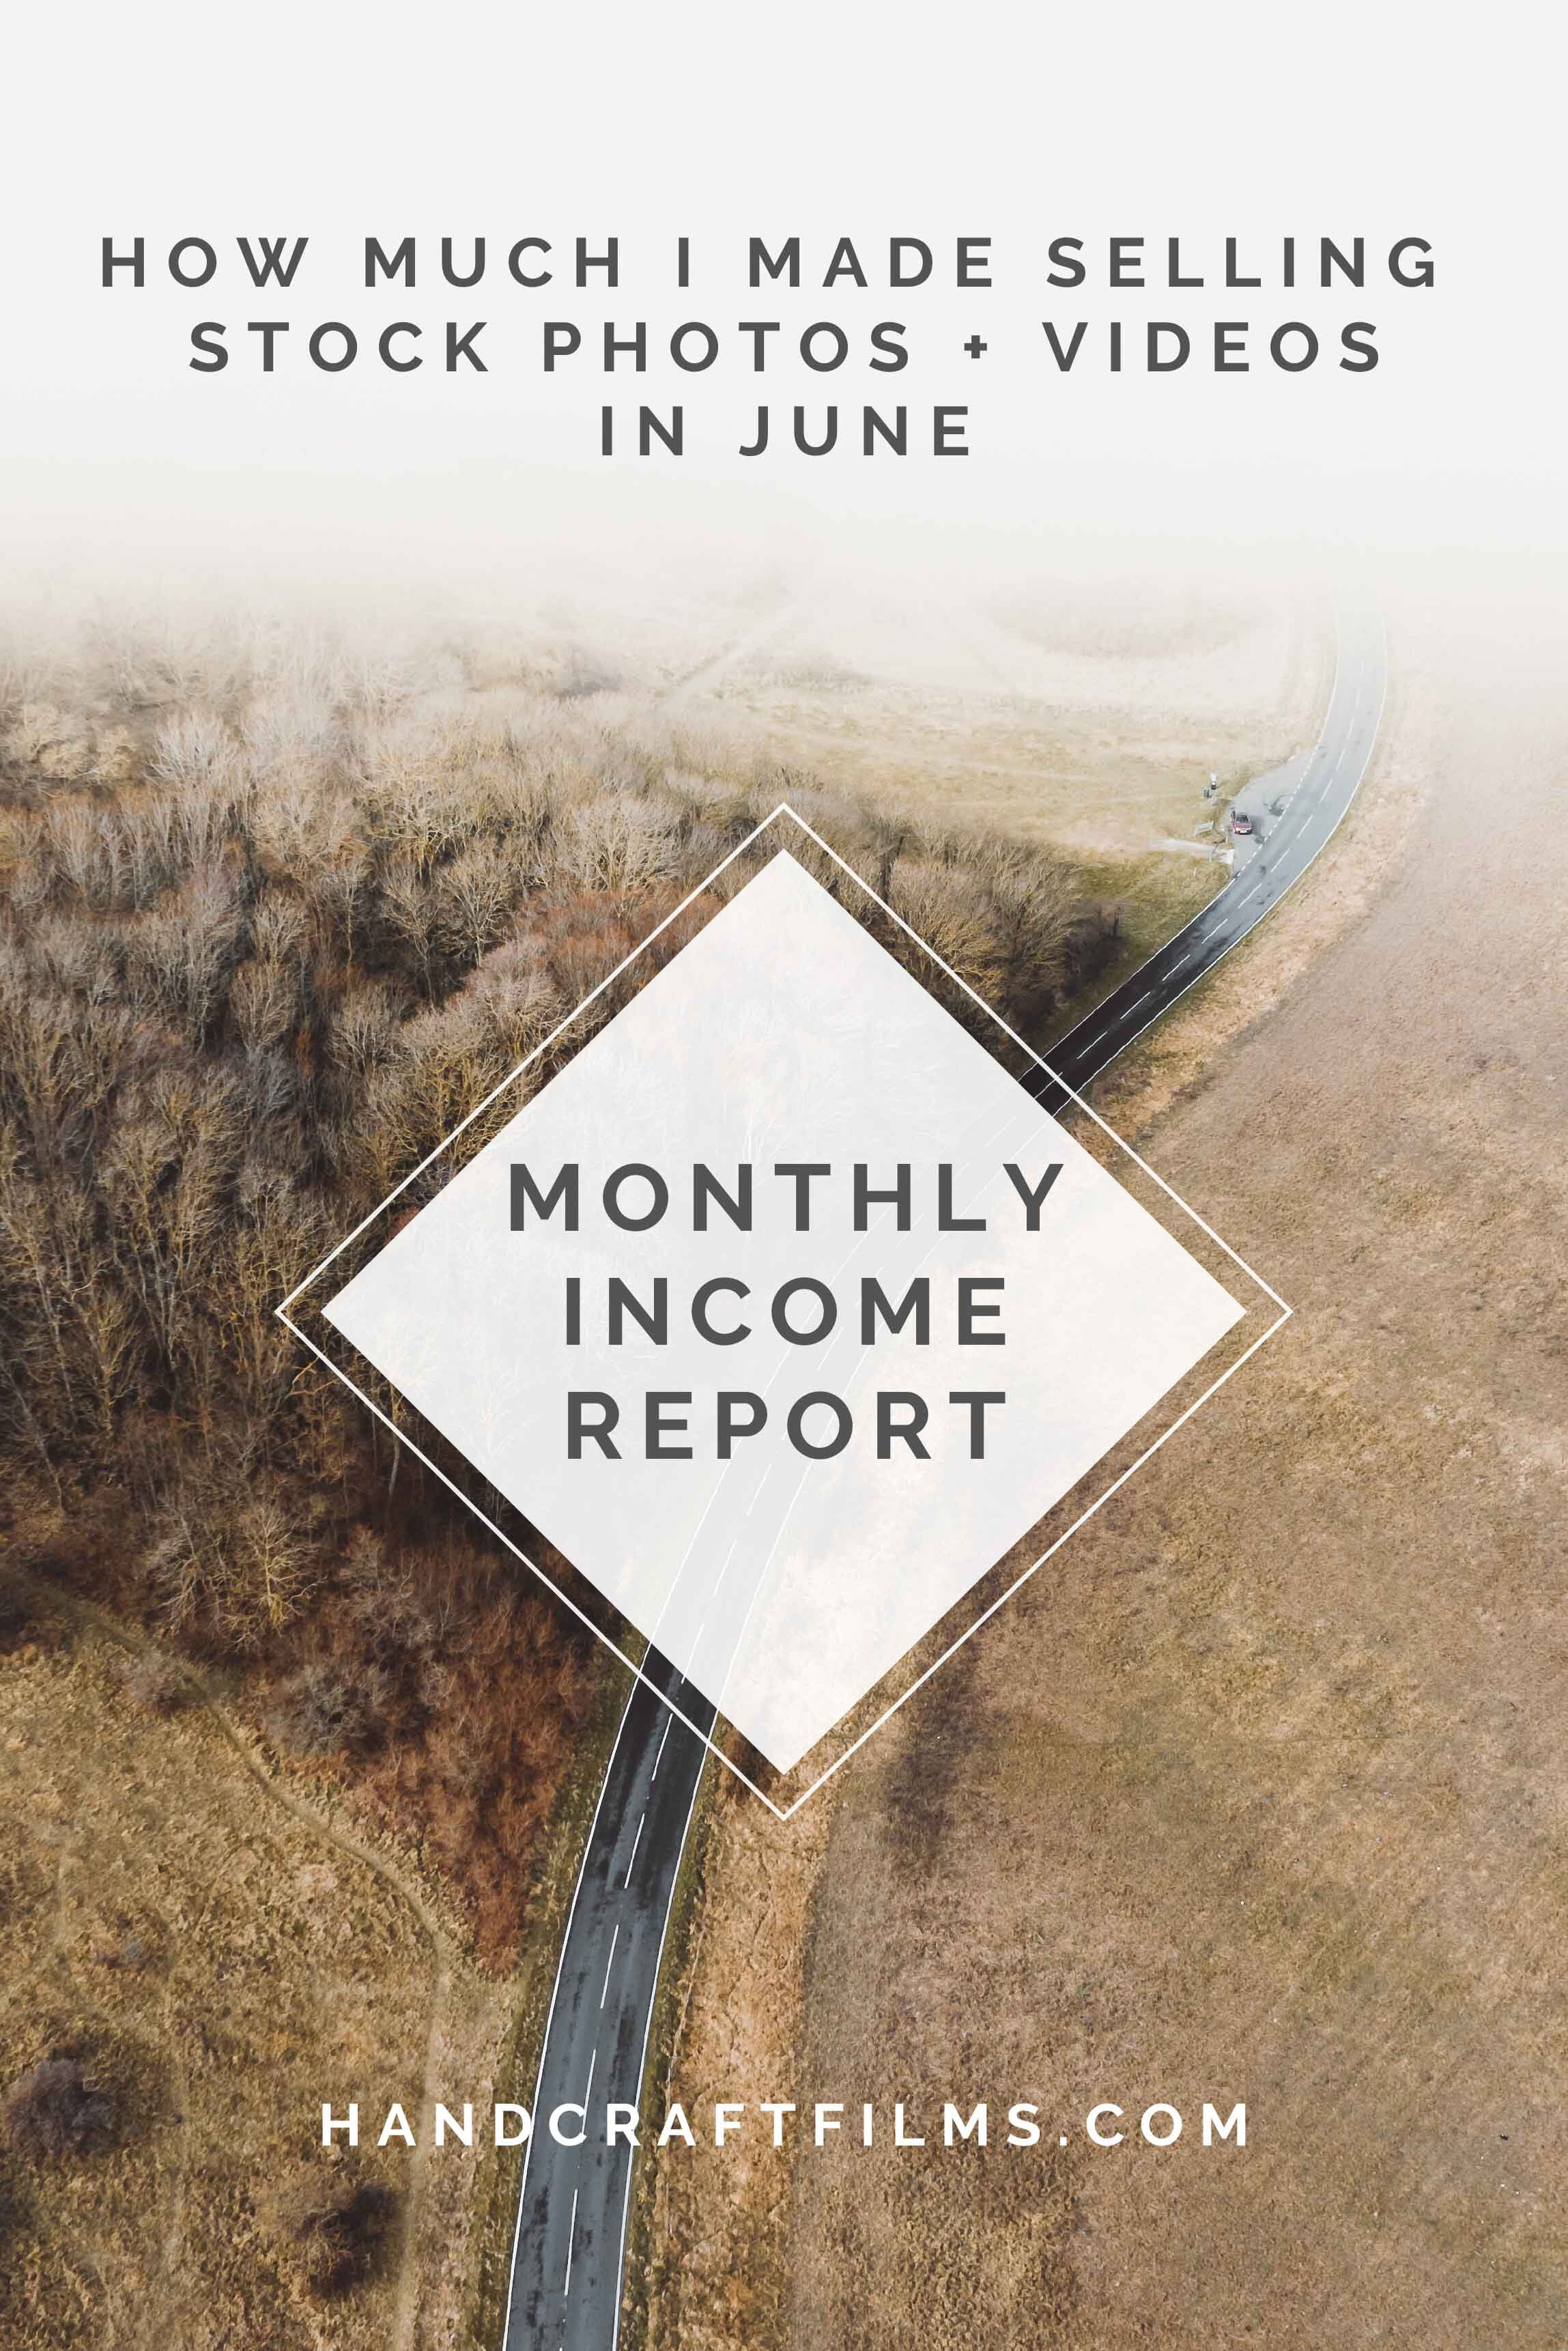 Monthly Stock Footage Income Report for June